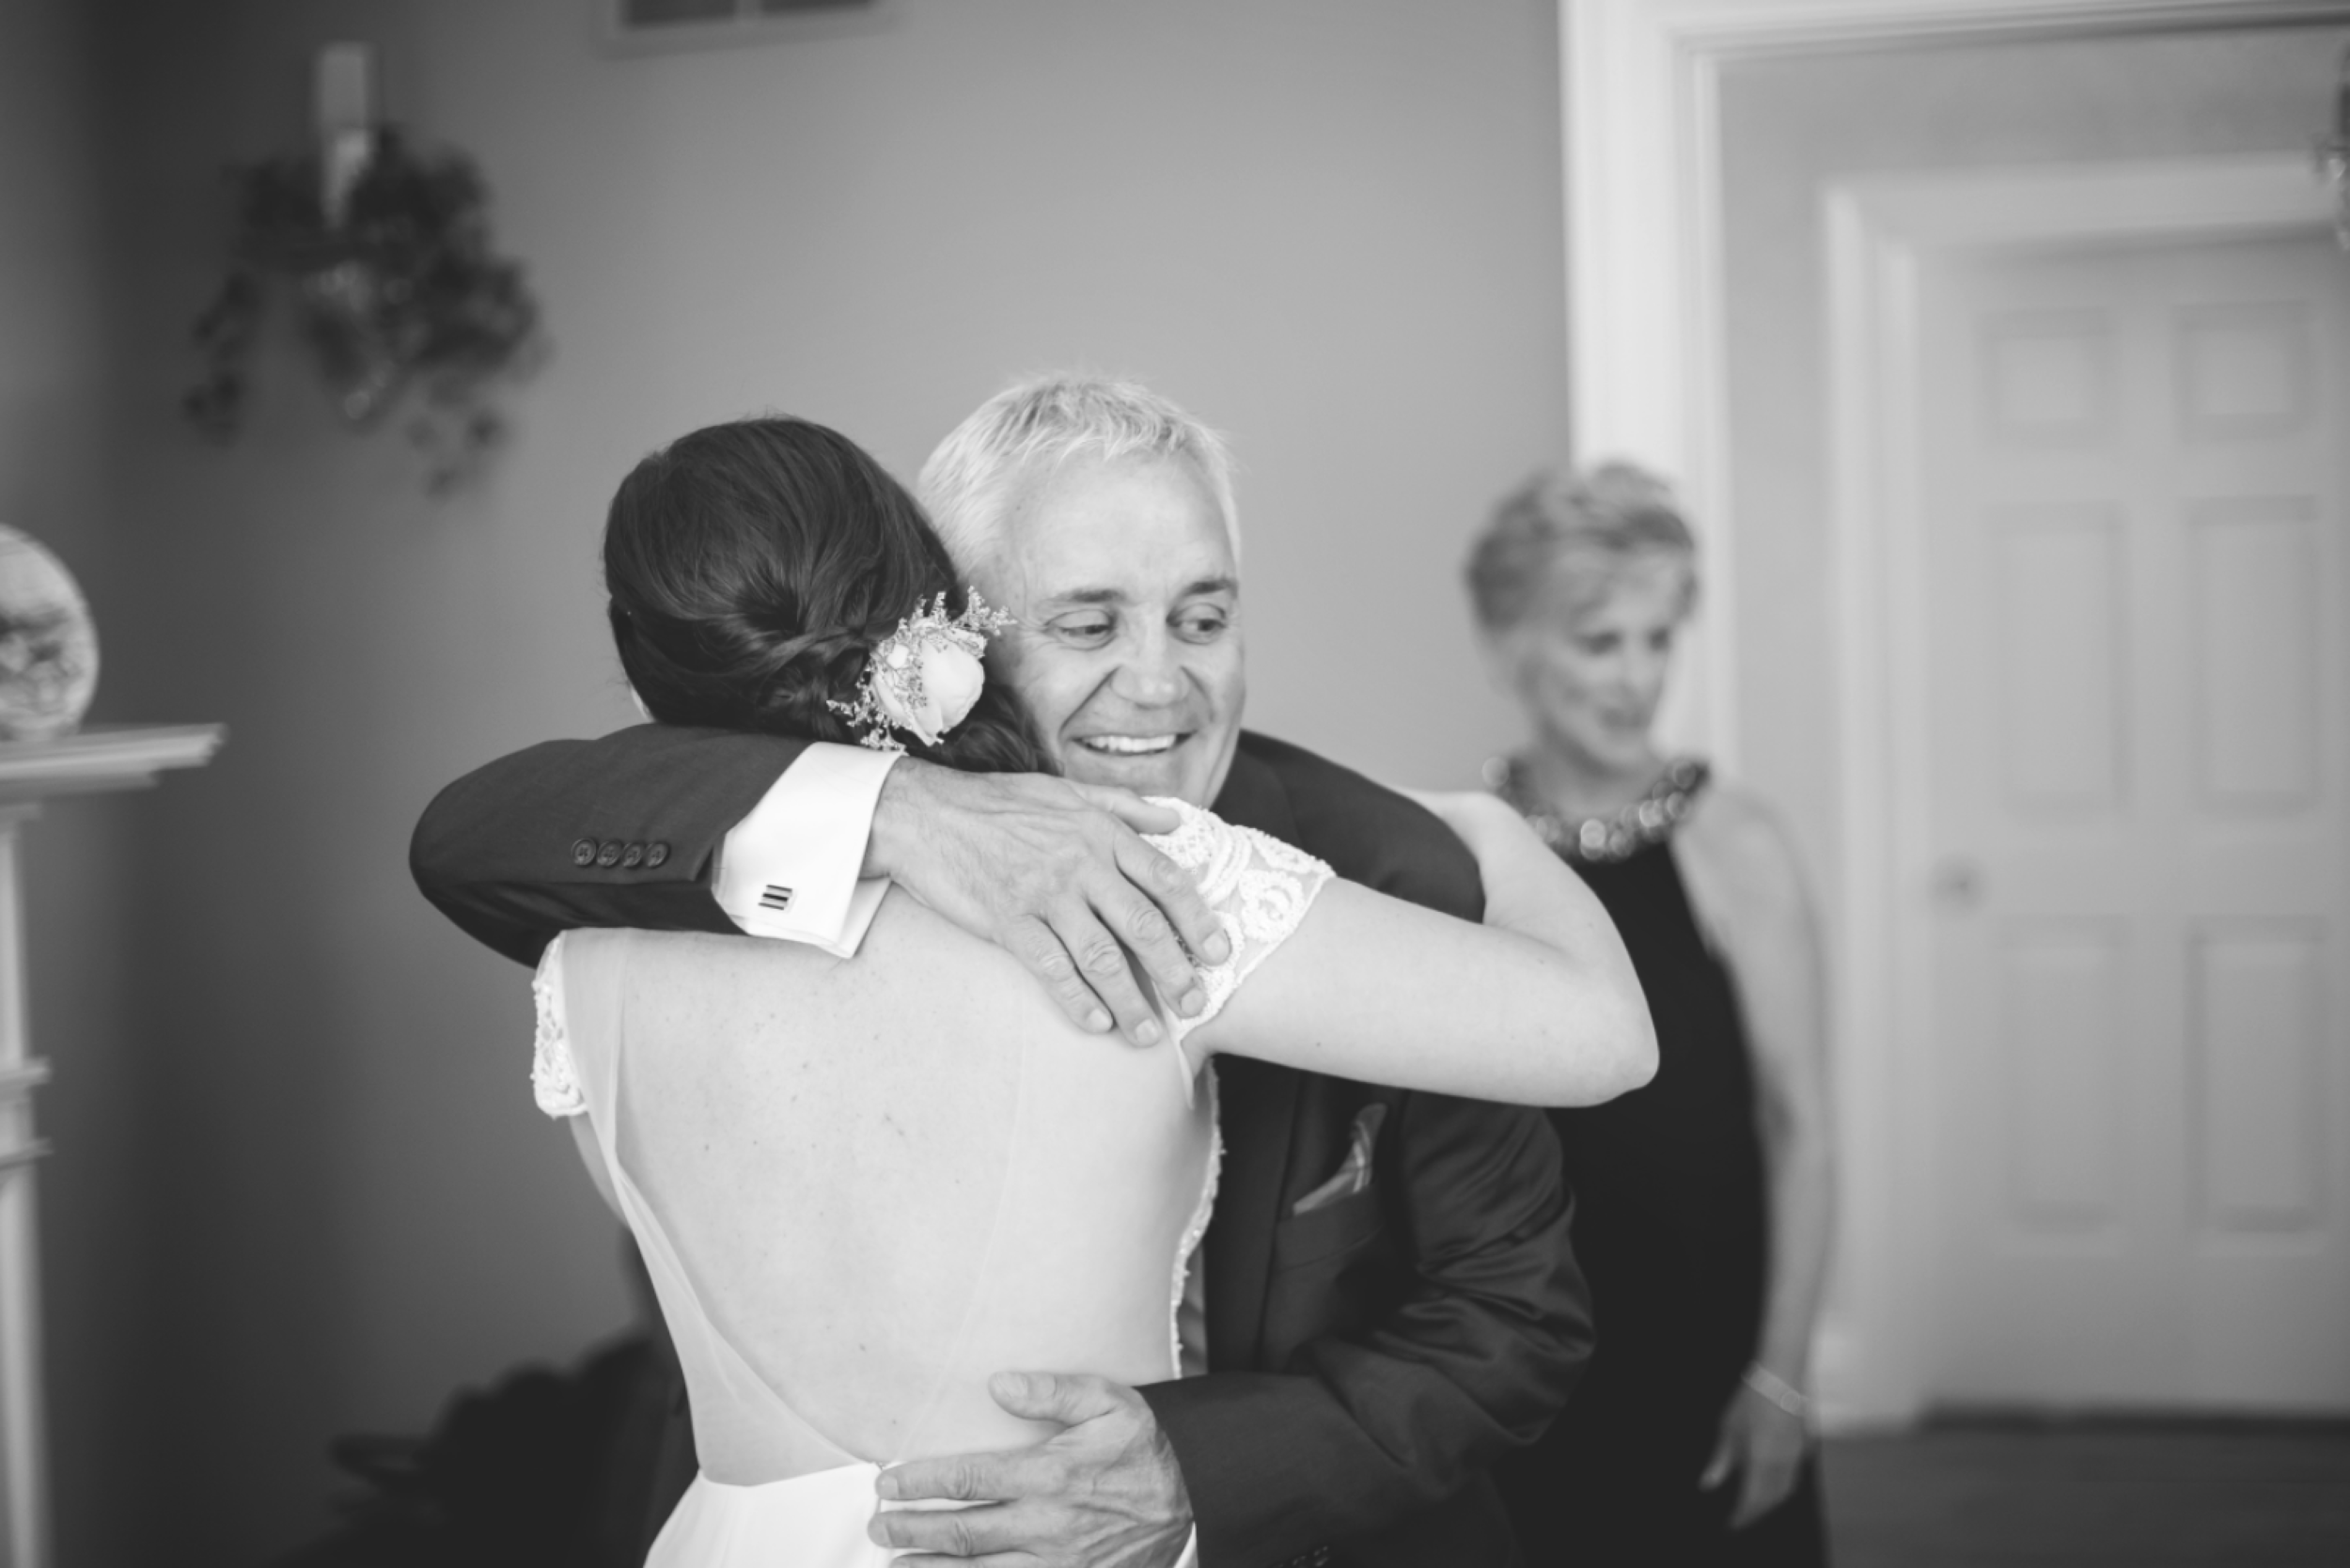 Wedding-Kurtz-Orchard-Market-Niagara-On-The-Lake-Toronto-Hamilton-Burlington-Oakville-Niagara-Wedding-Photographer-Photography-Moments-by-Lauren-Photo-Image-13.png